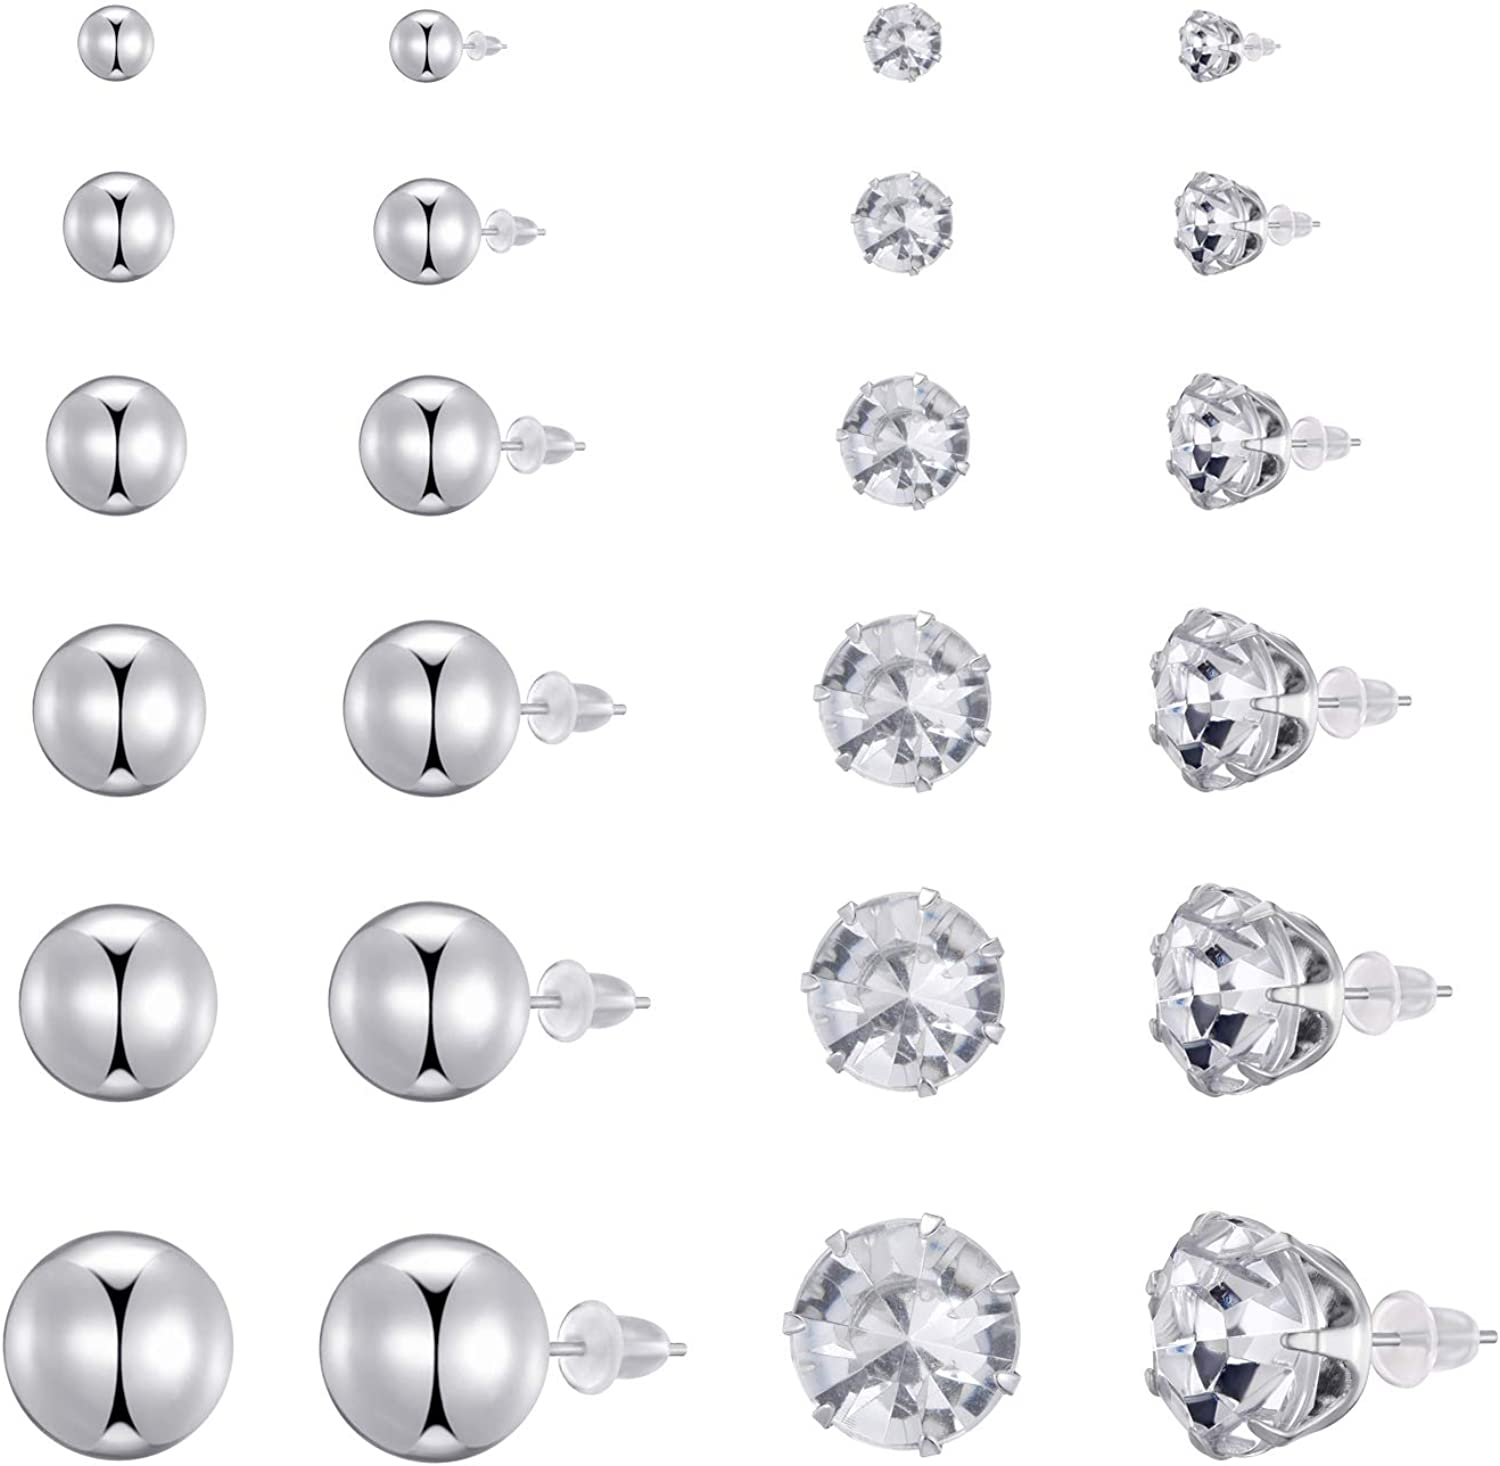 Yanxyad Jewelry Women's Stainless Steel Round Clear Cubic Zirconia Stud Earring (12Pairs)